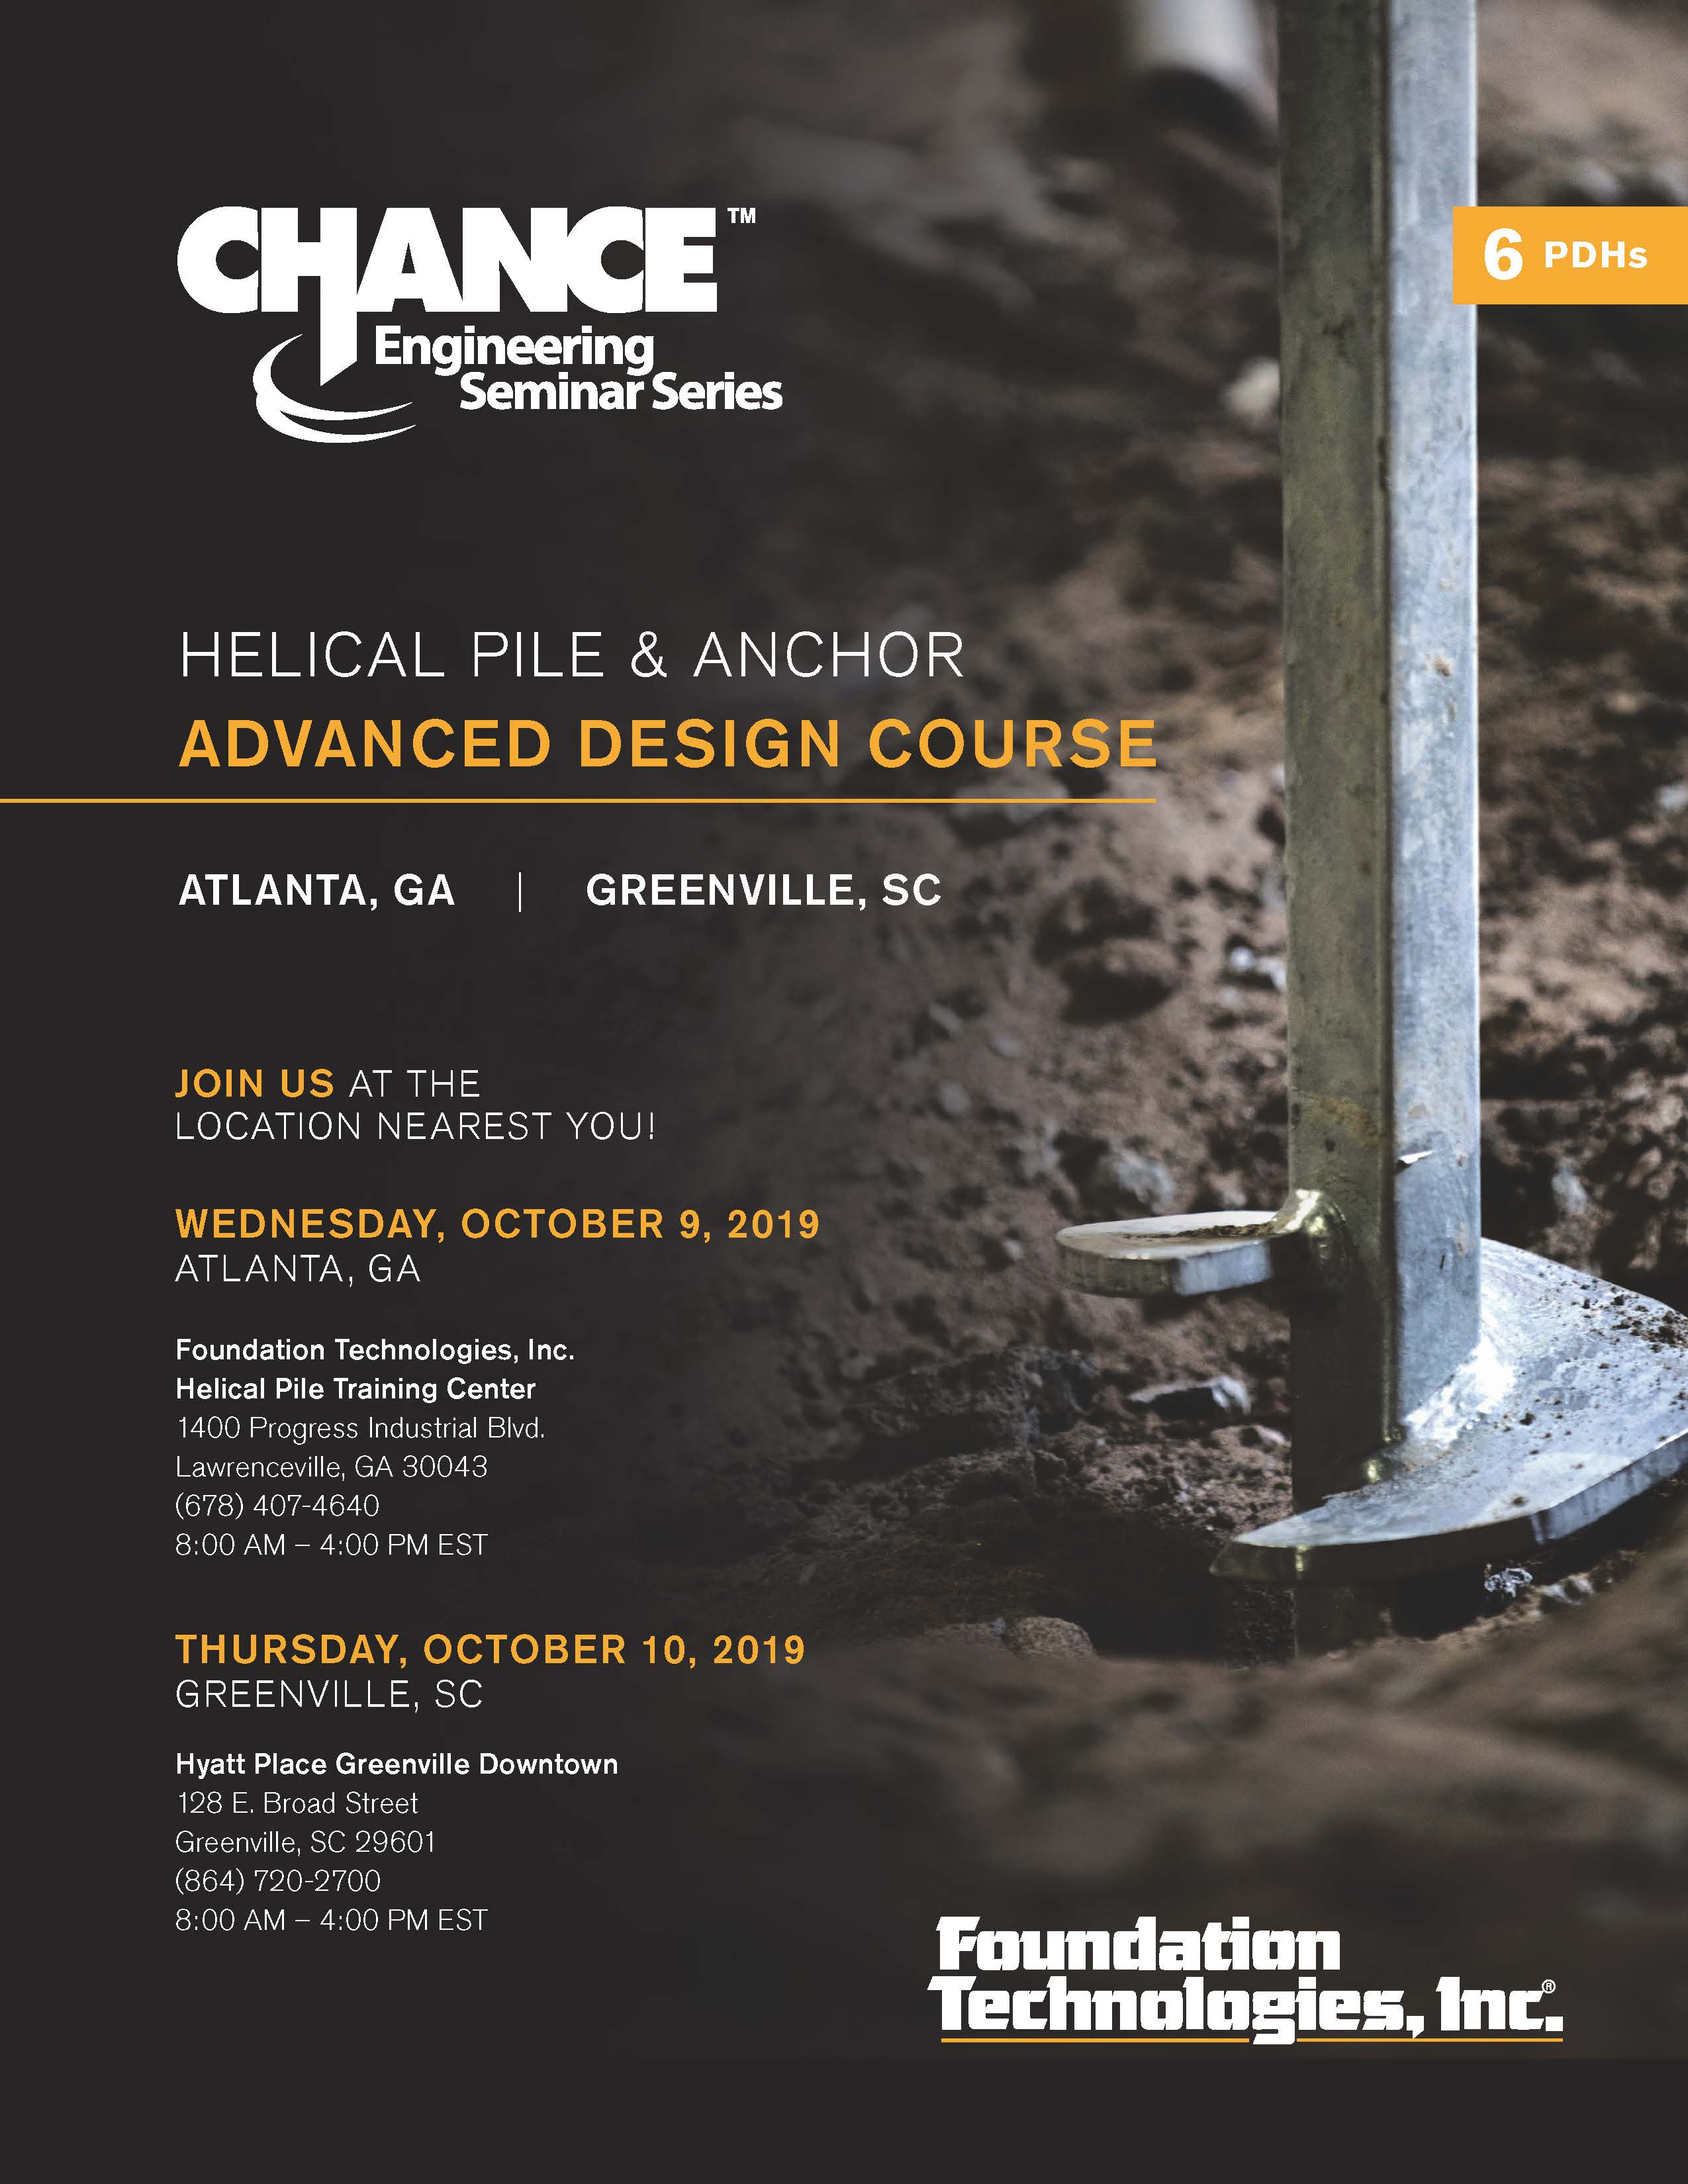 CHANCE® Helical Pile & Anchor Advanced Design Course at Greenville